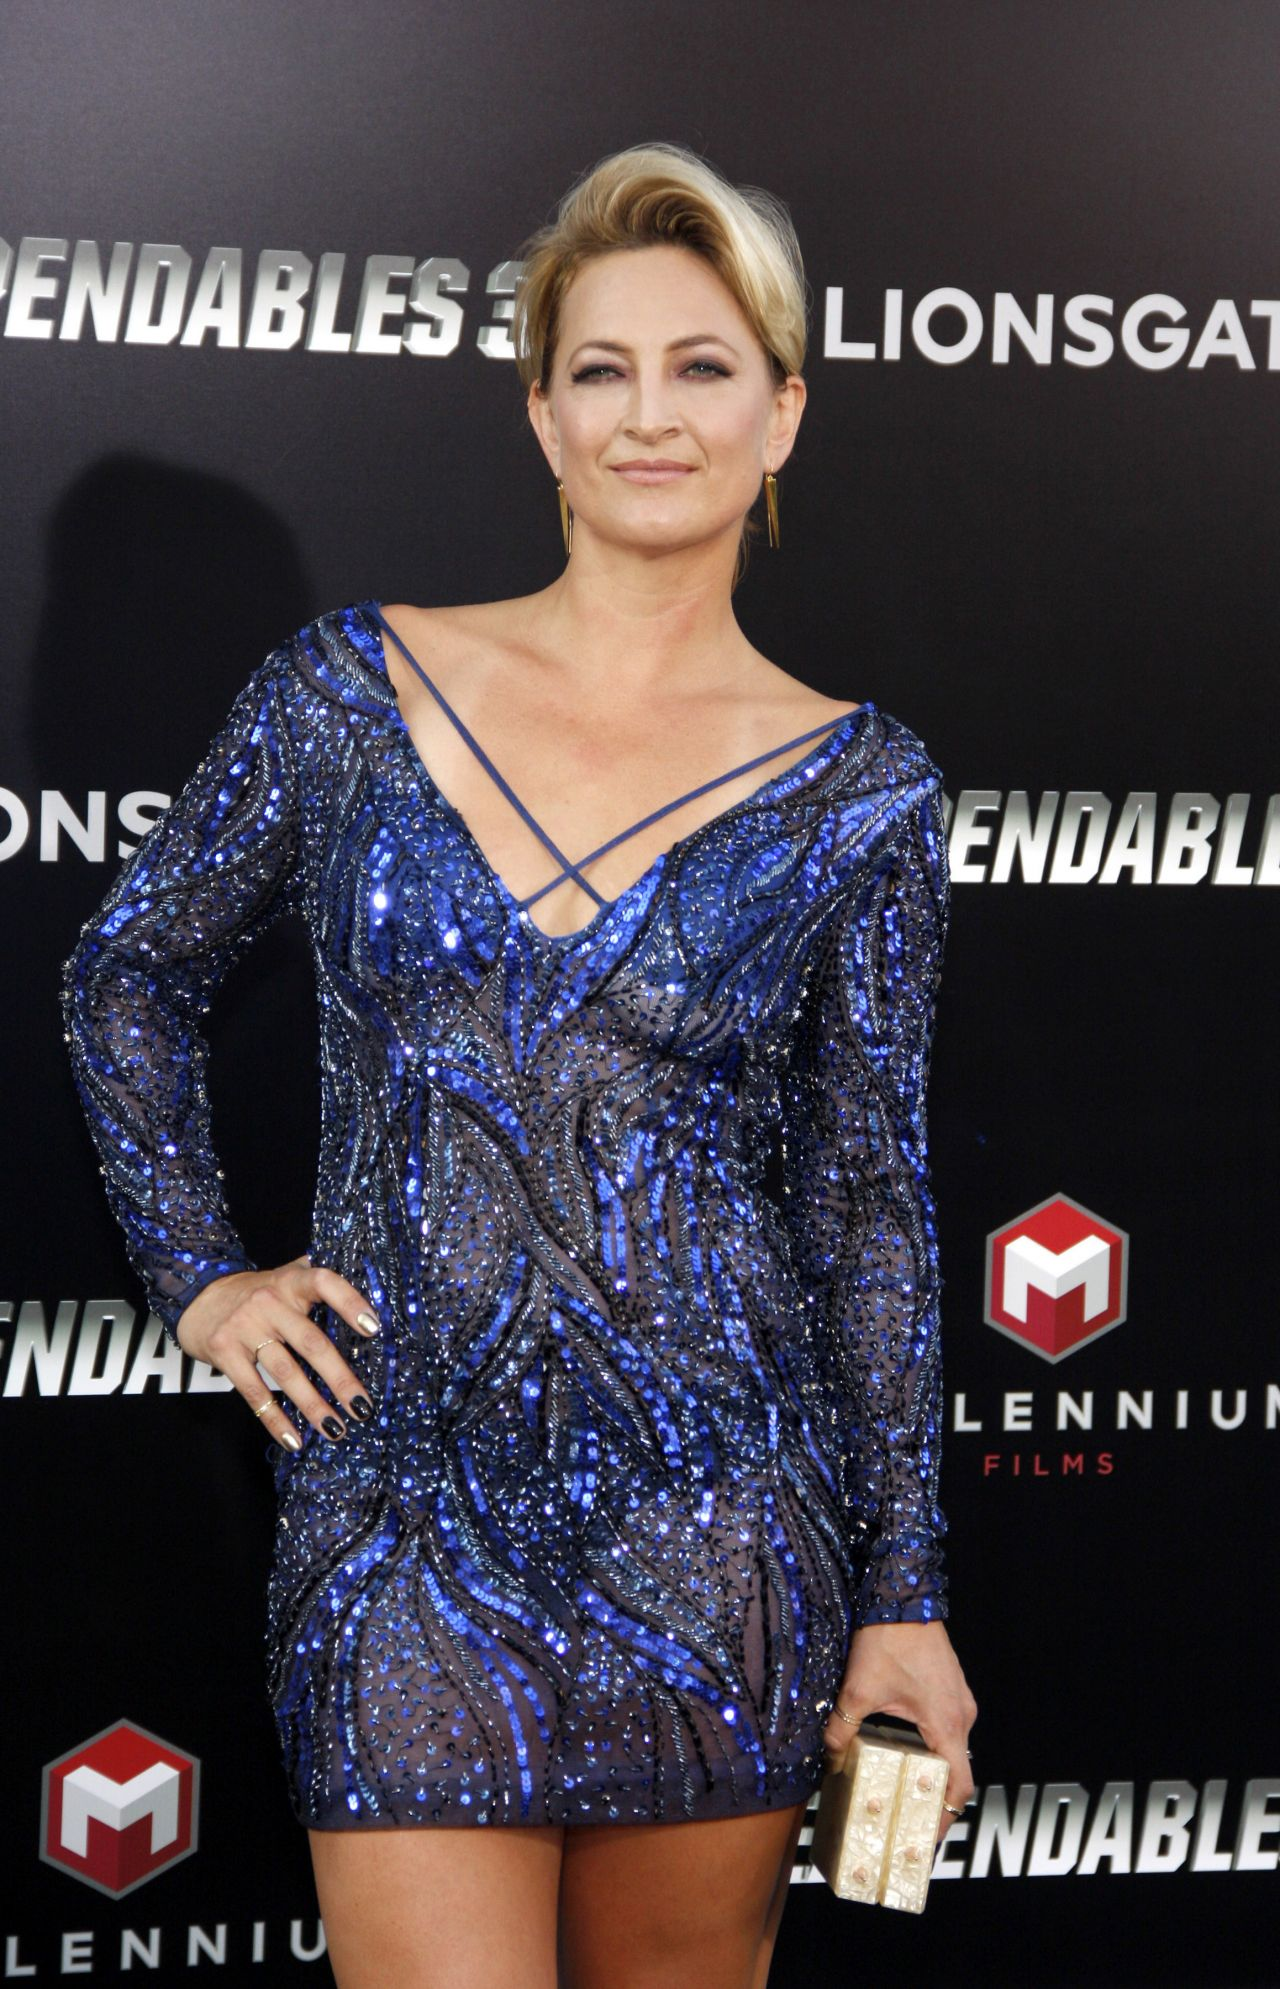 Zoe Bell The Expendables 3 Premiere In Hollywood